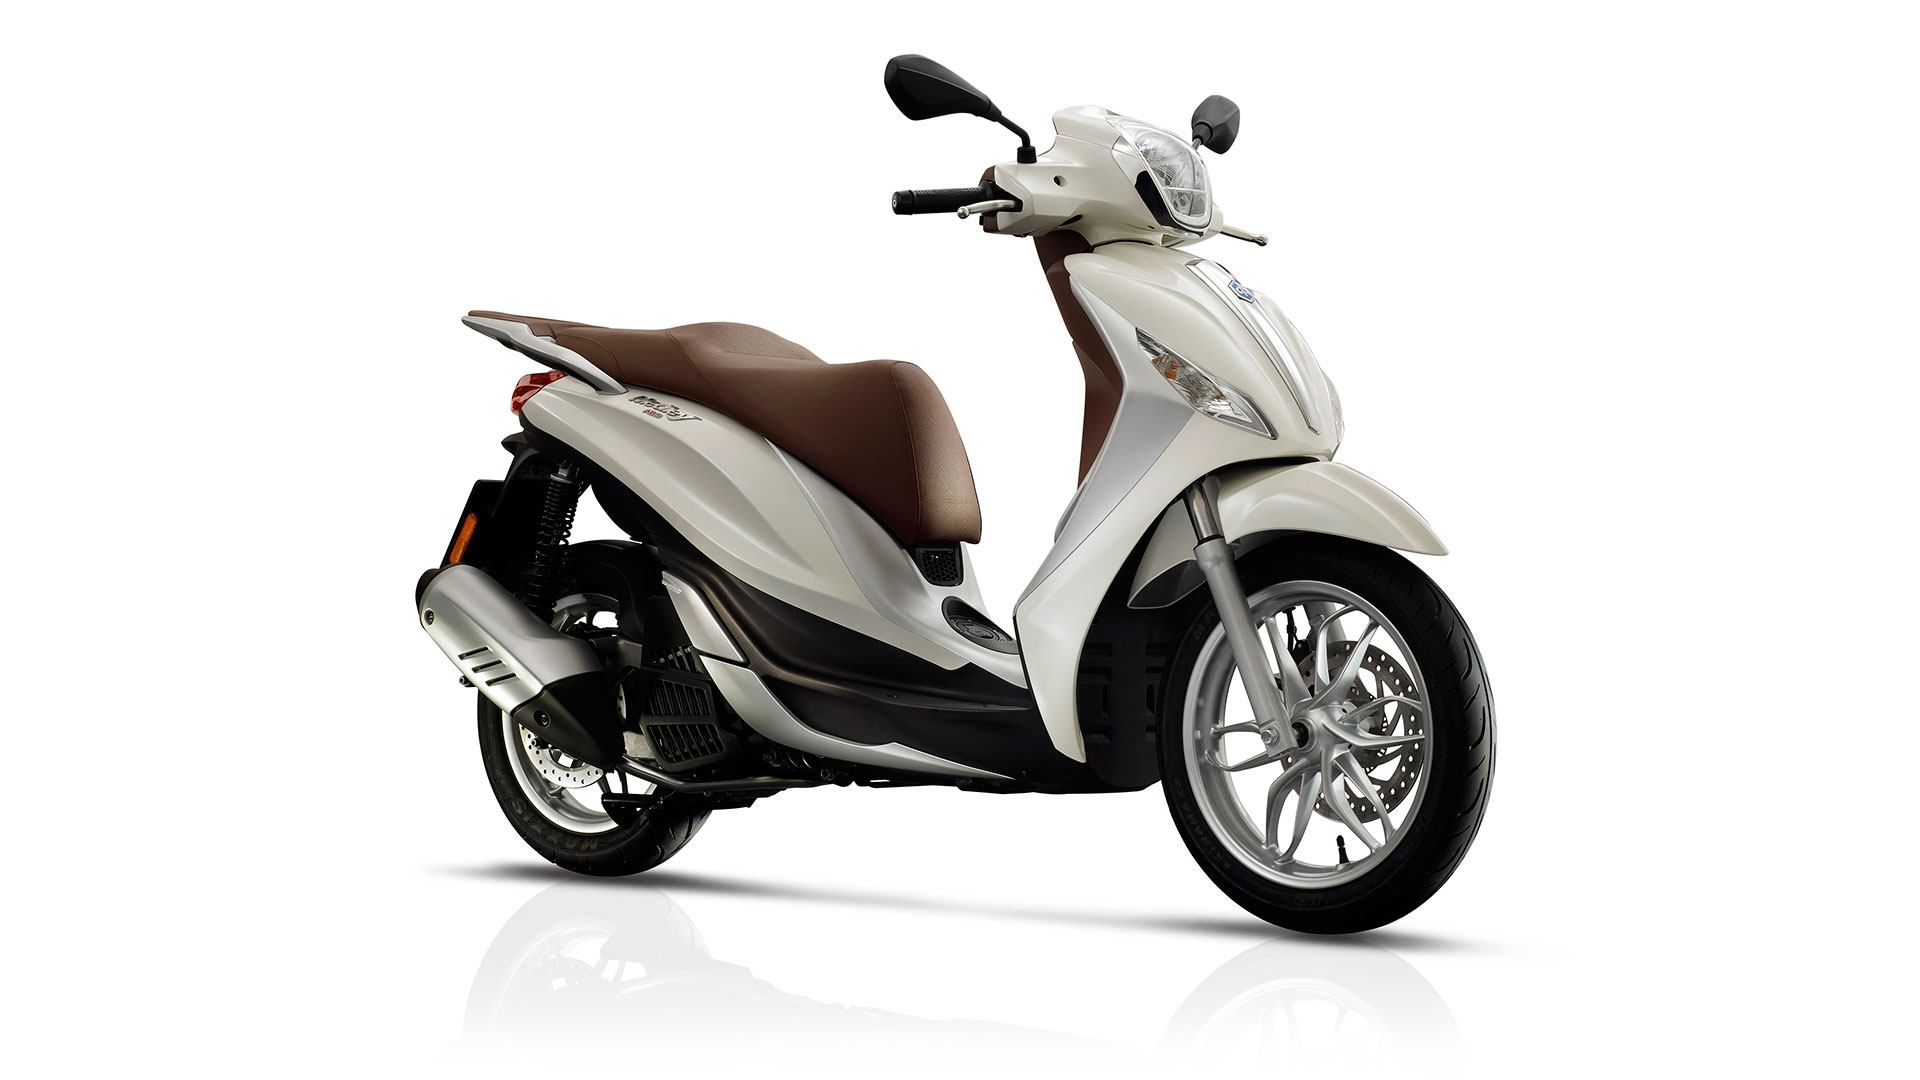 Achat Piaggio Medley ABS 125 cm3 neuf à Nice chez Scoot Center-1